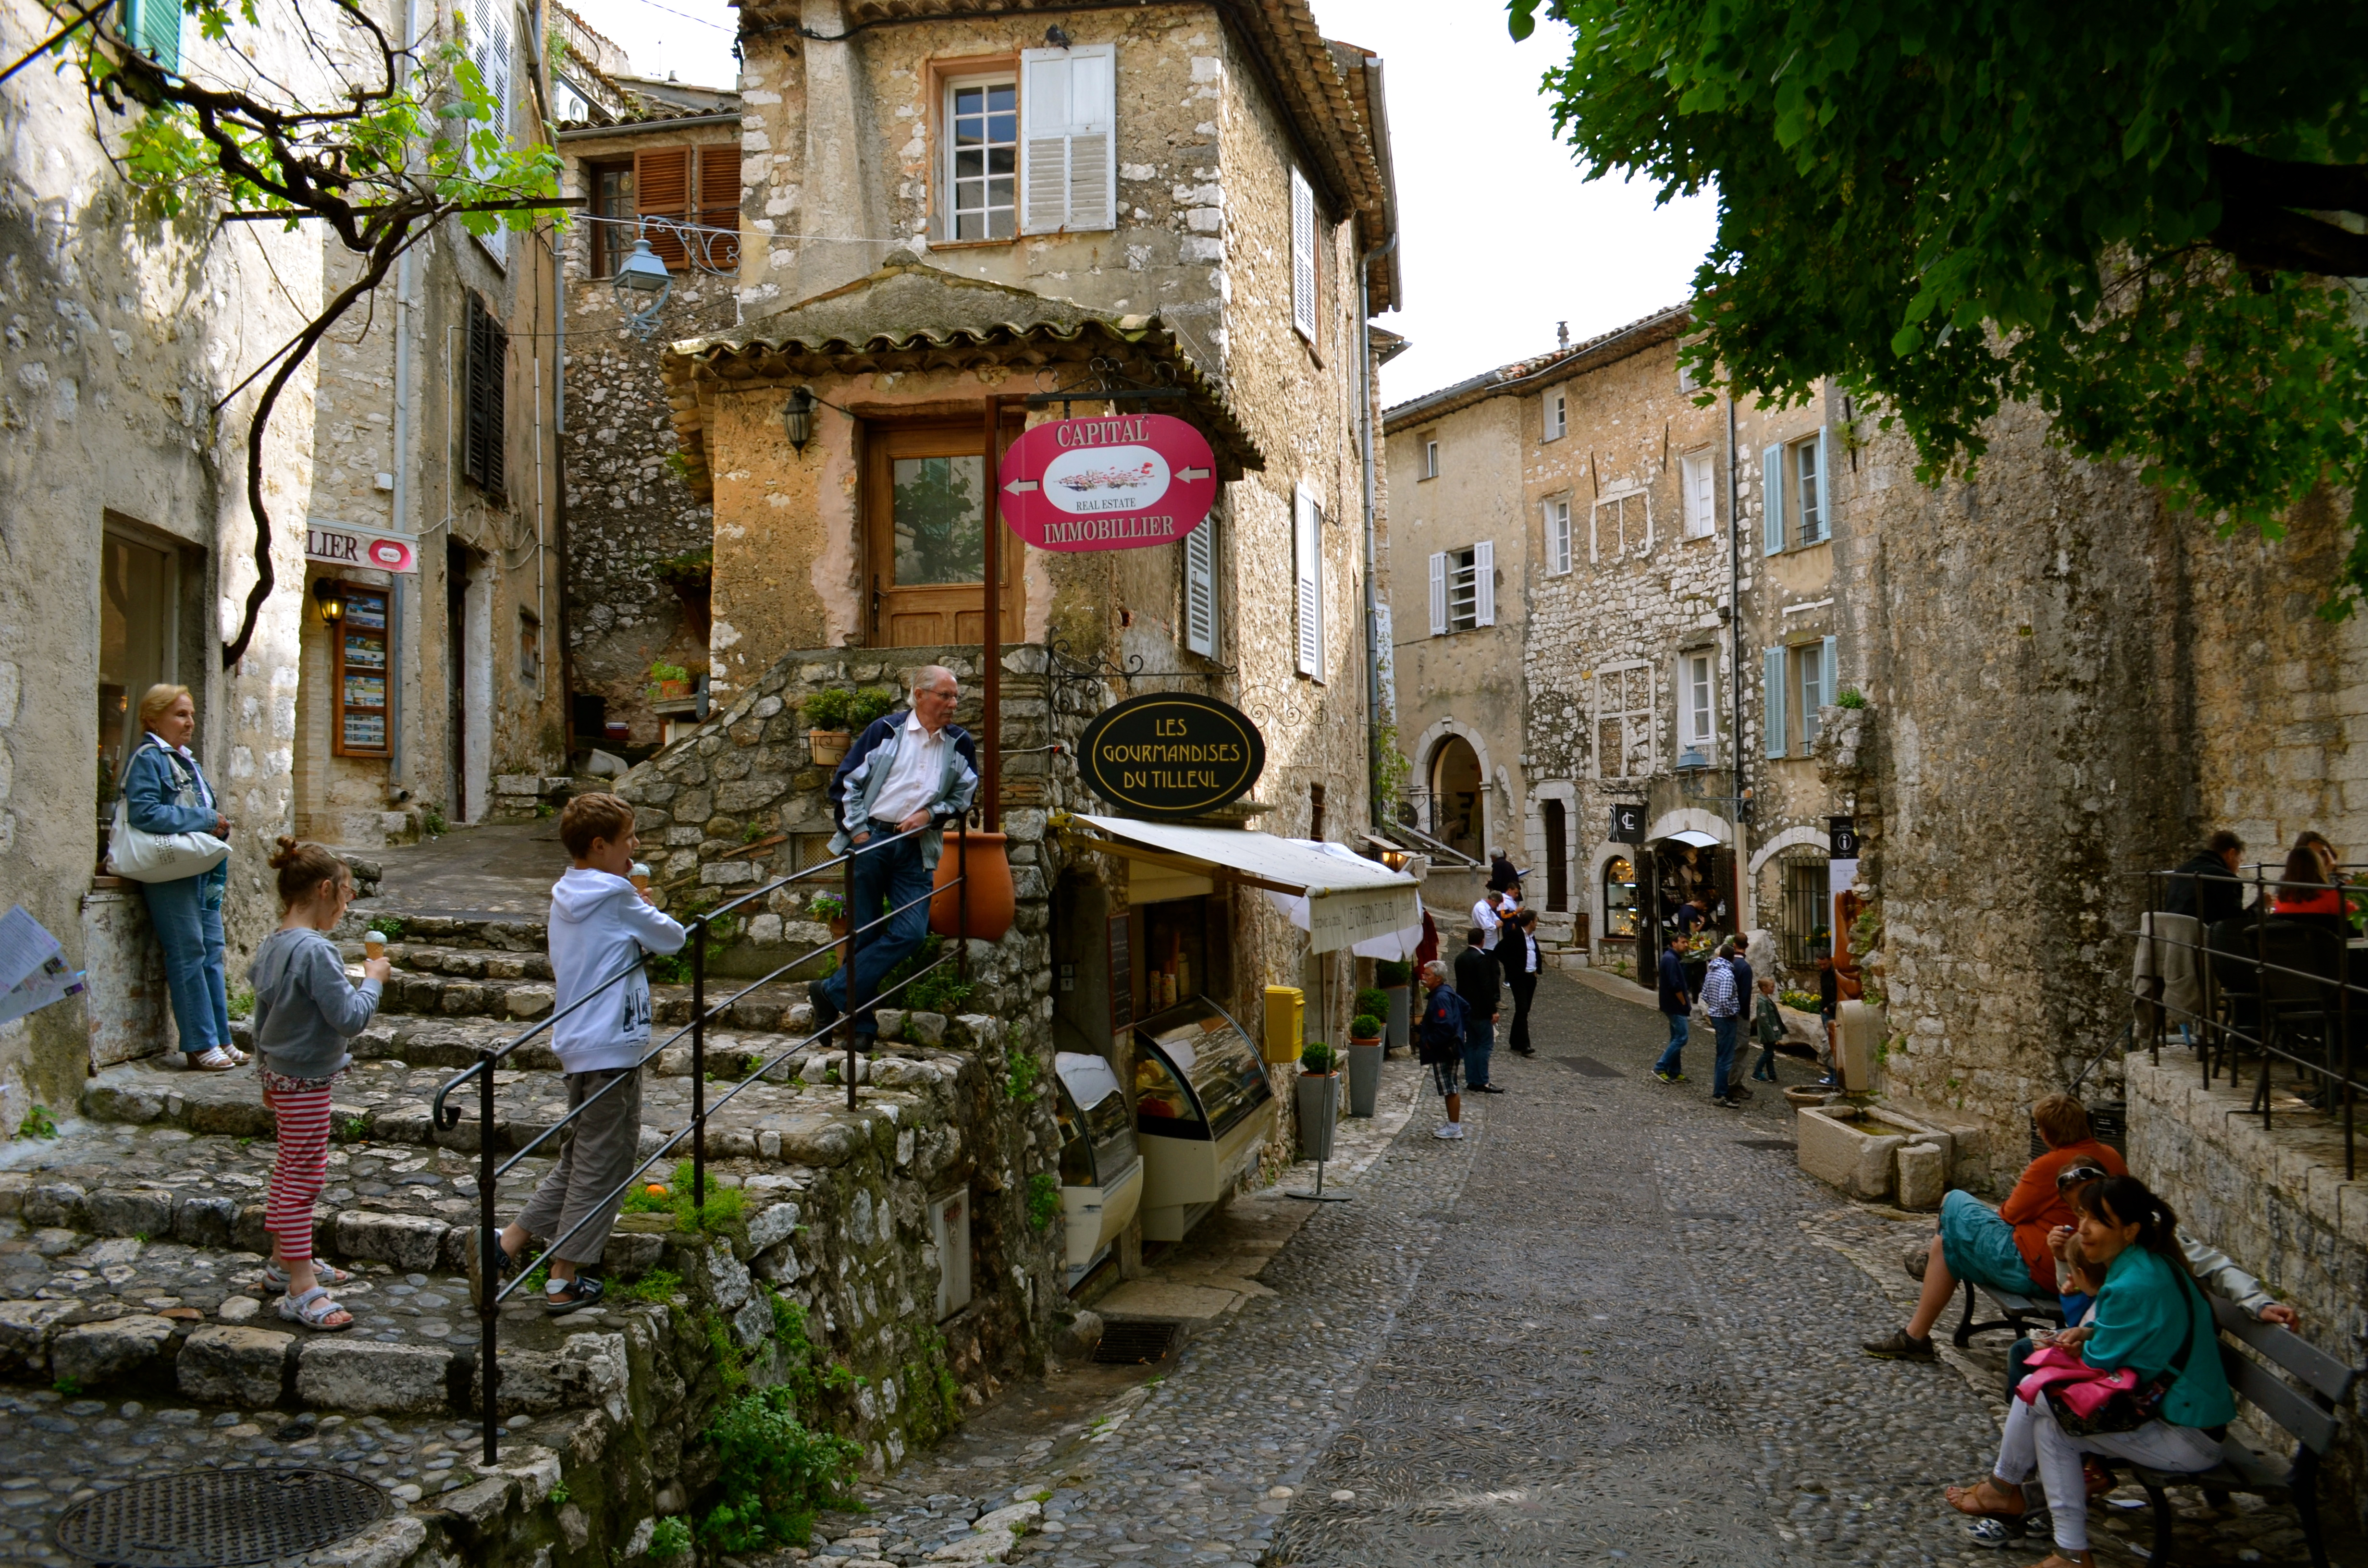 Everyone Loves St Paul De Vence Schwingeninswitzerland